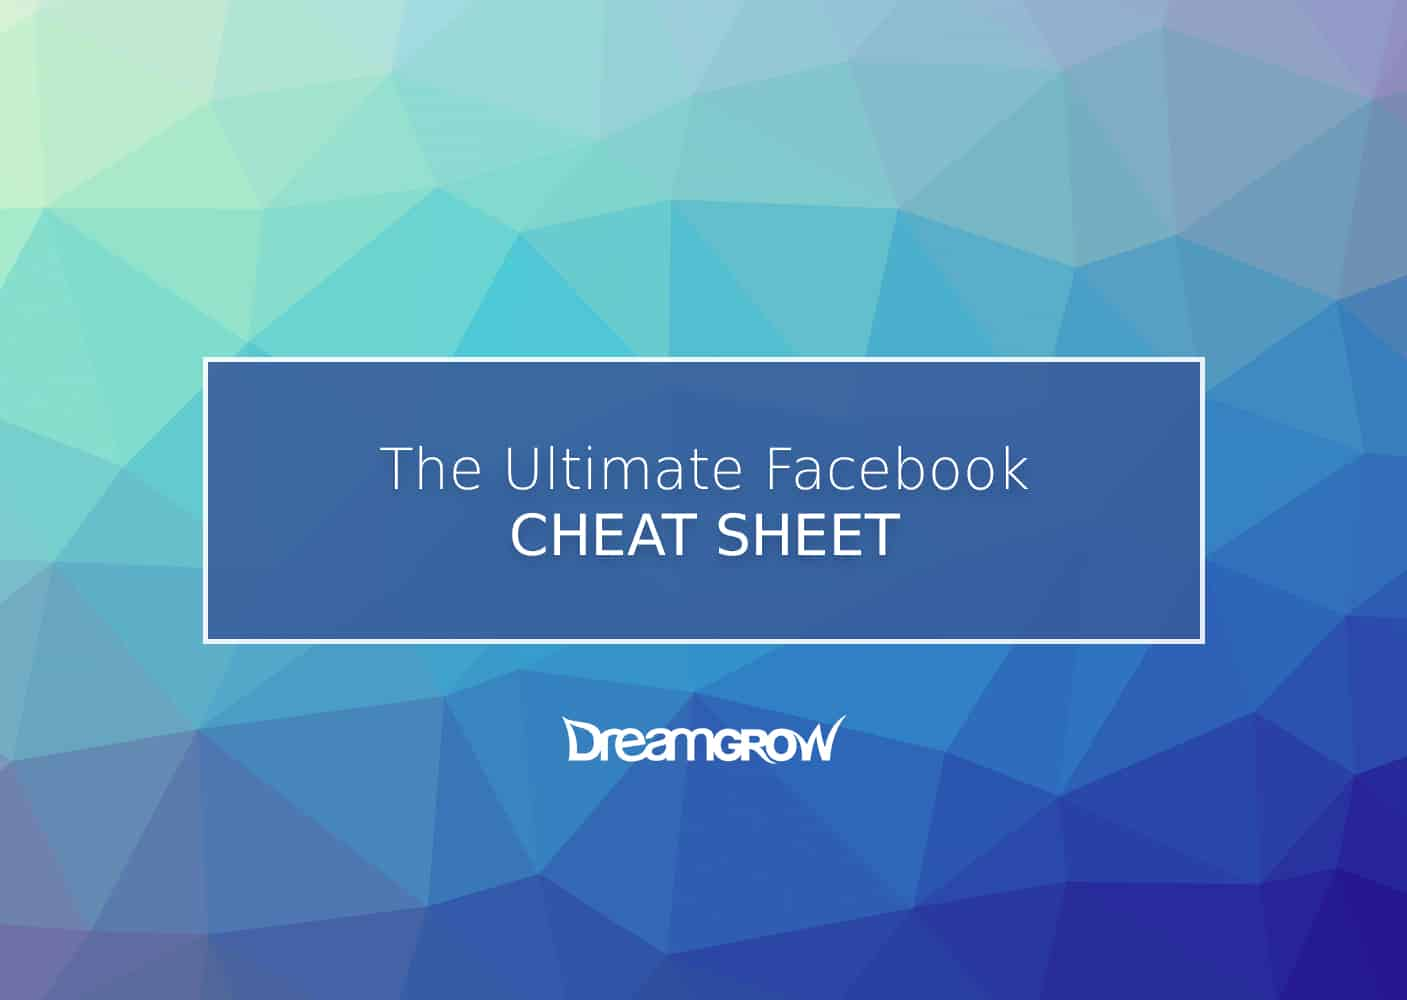 Facebook Cheat Sheet All Sizes And Dimensions 2018 At Dreamgrow 2018